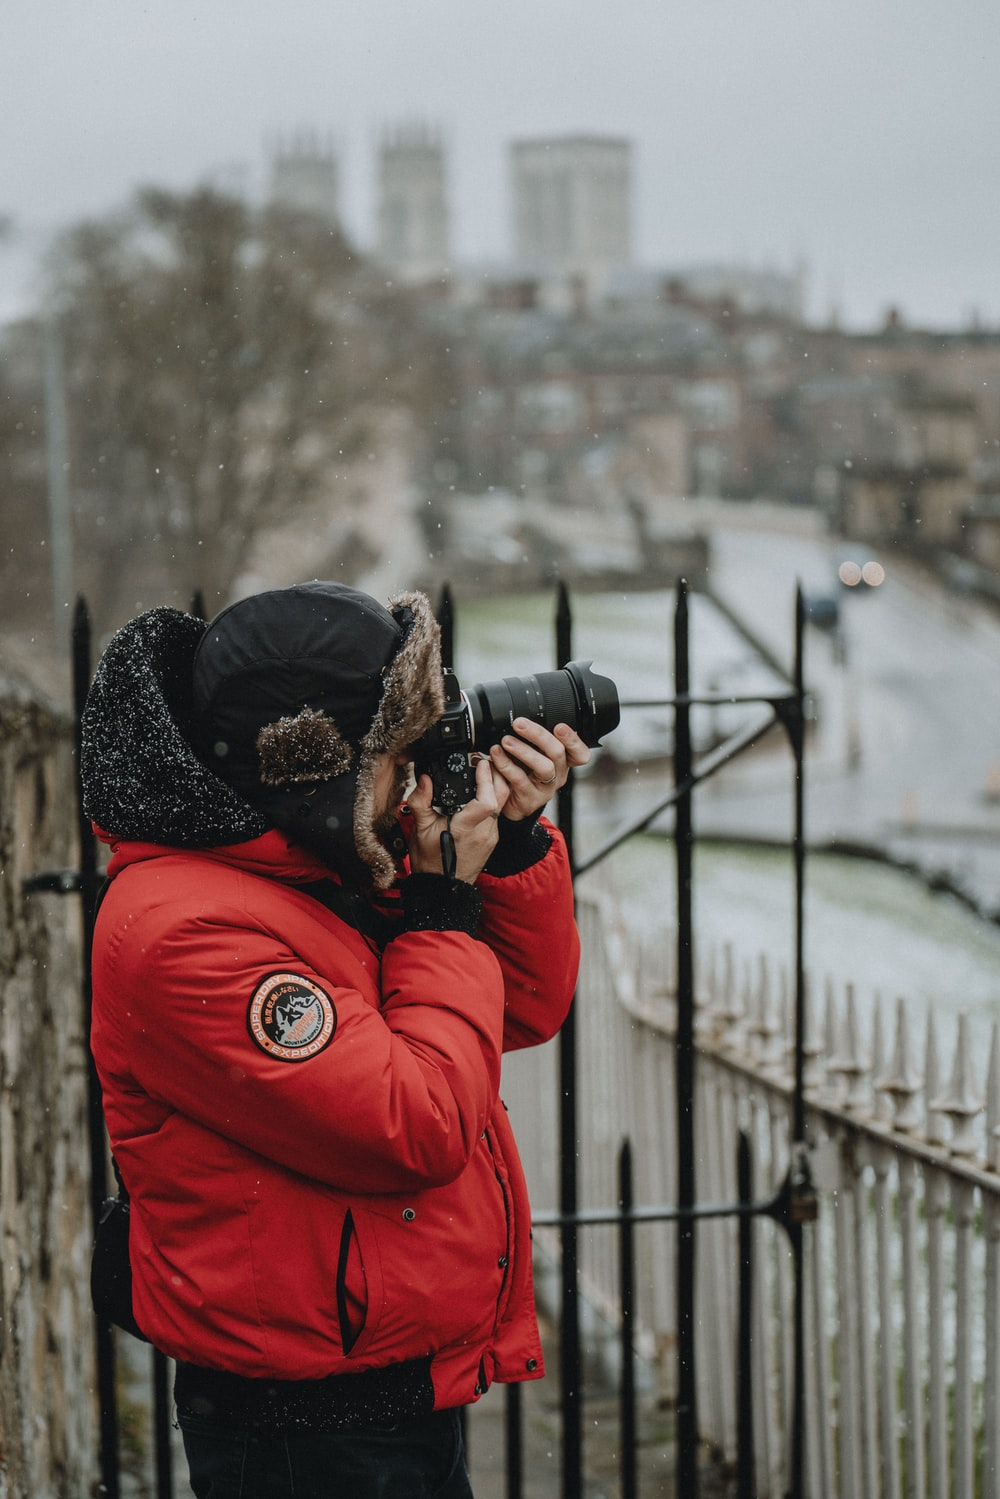 woman in red jacket holding black dslr camera